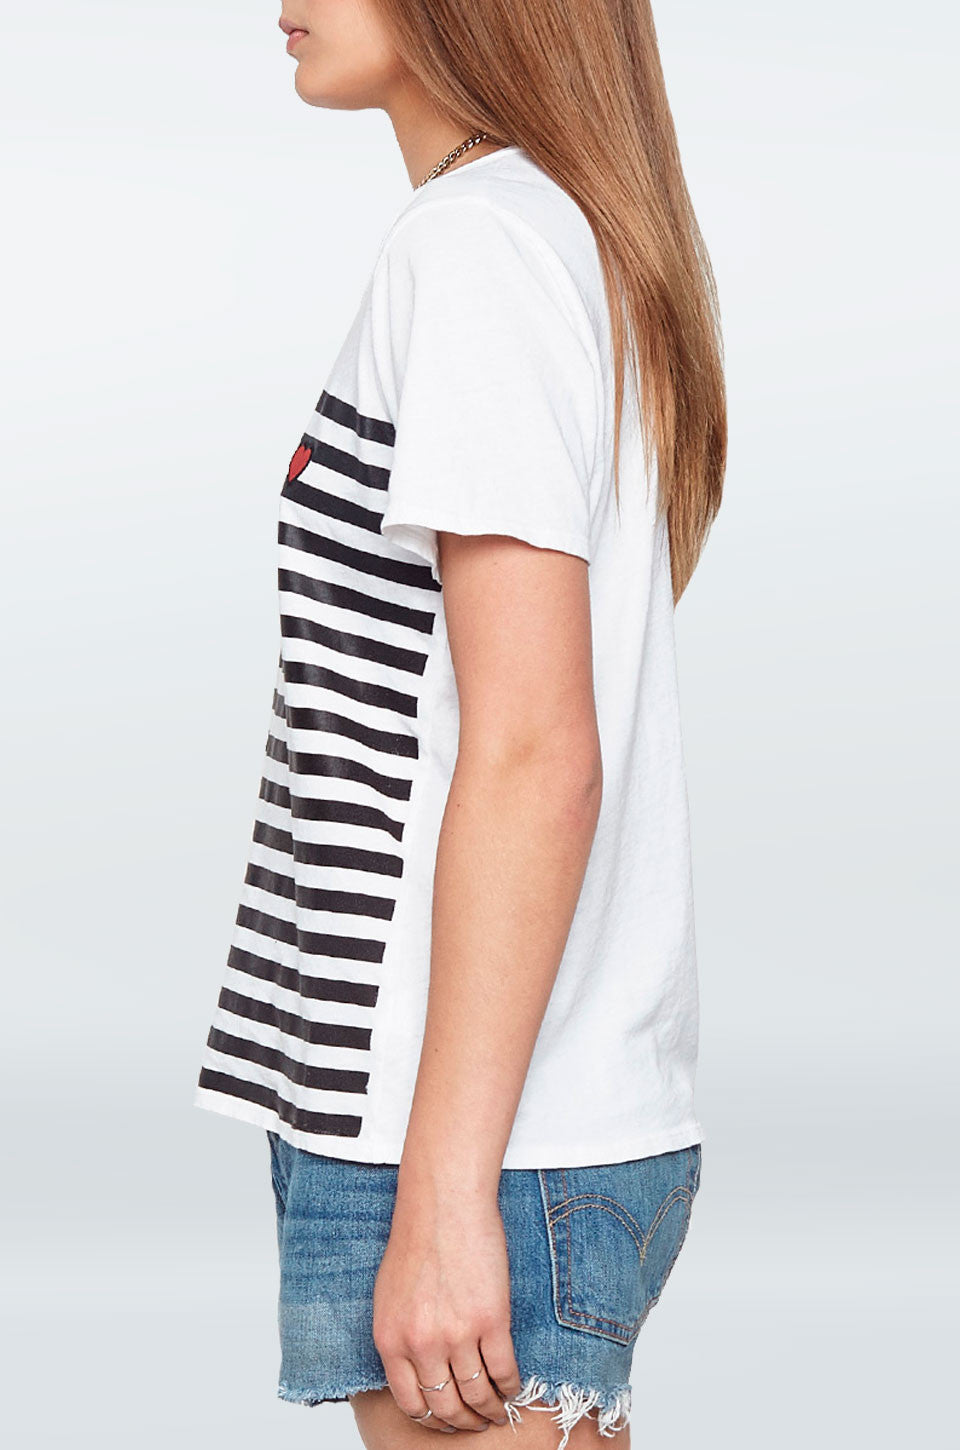 Lauren Moshi Women's X Exclusive X Croft Little Red Heart Patch Striped S/S Vintage Tee - White